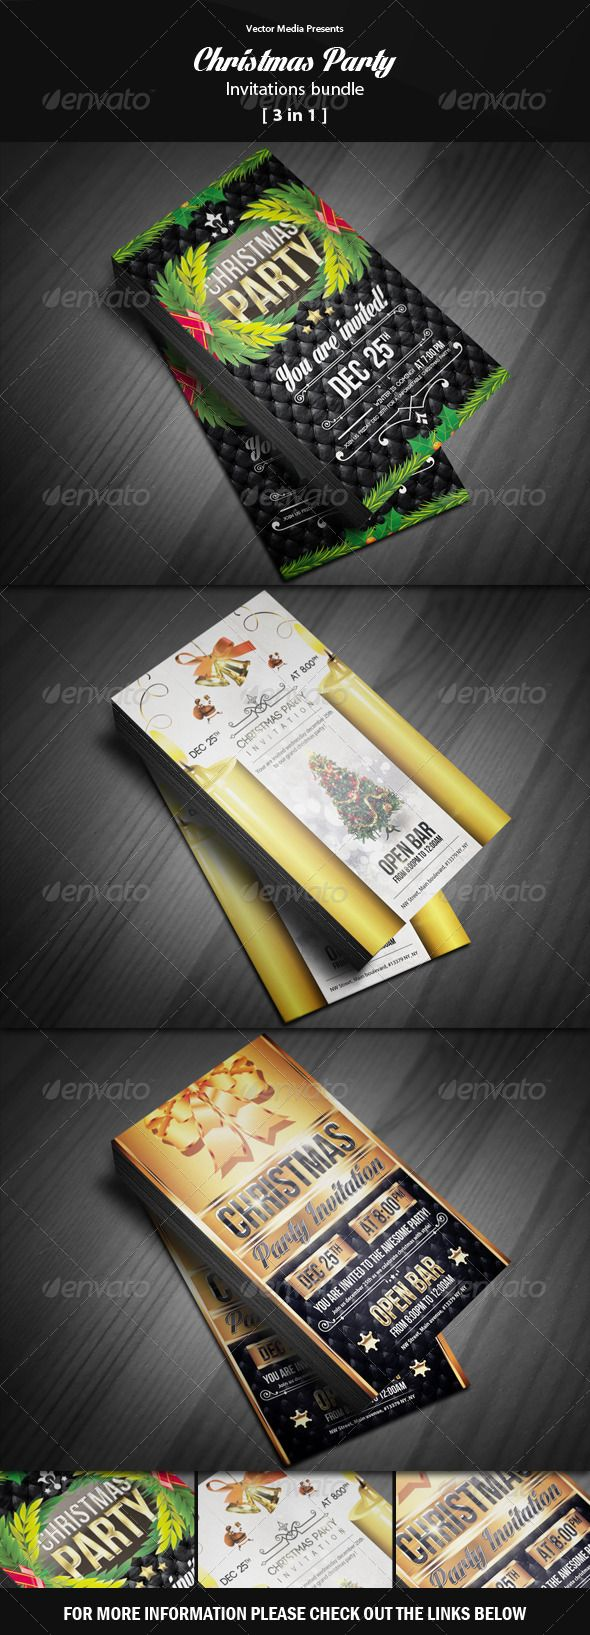 Christmas Party - Invitations Bundle